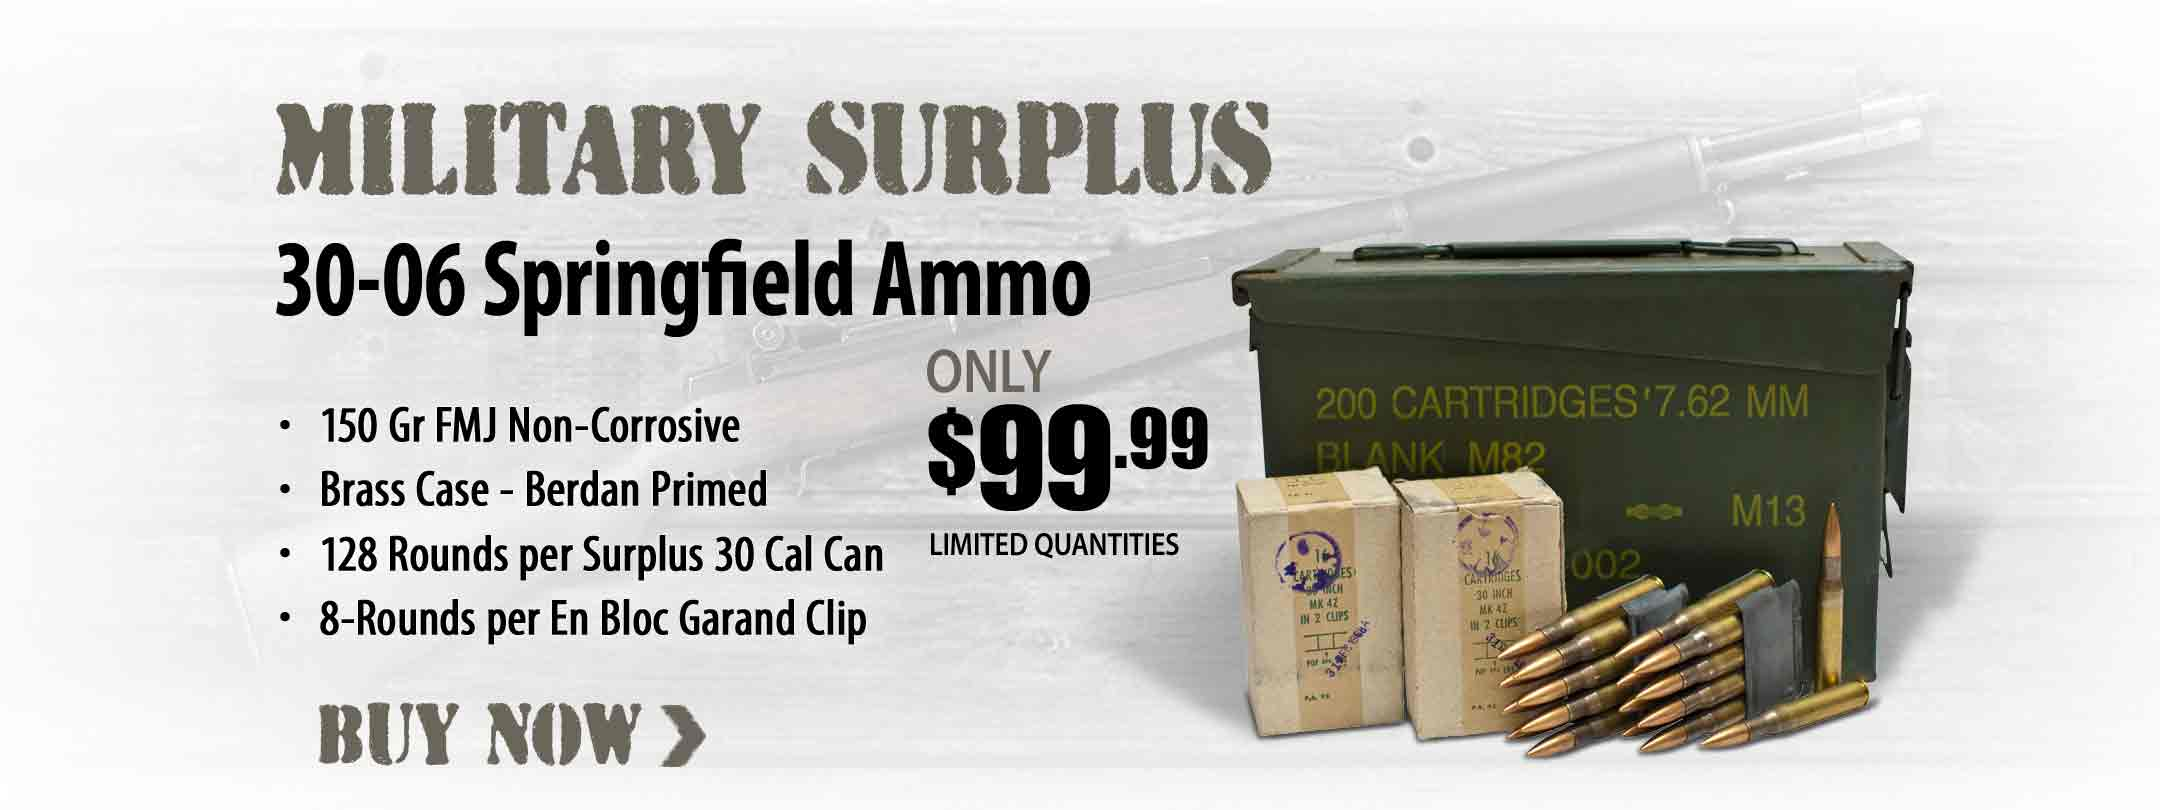 Military Surplus 30-06 Ammo 150 Gr FMJ Loaded in 8-Rnd Garand Clips Ammo Can of 128 Rnds